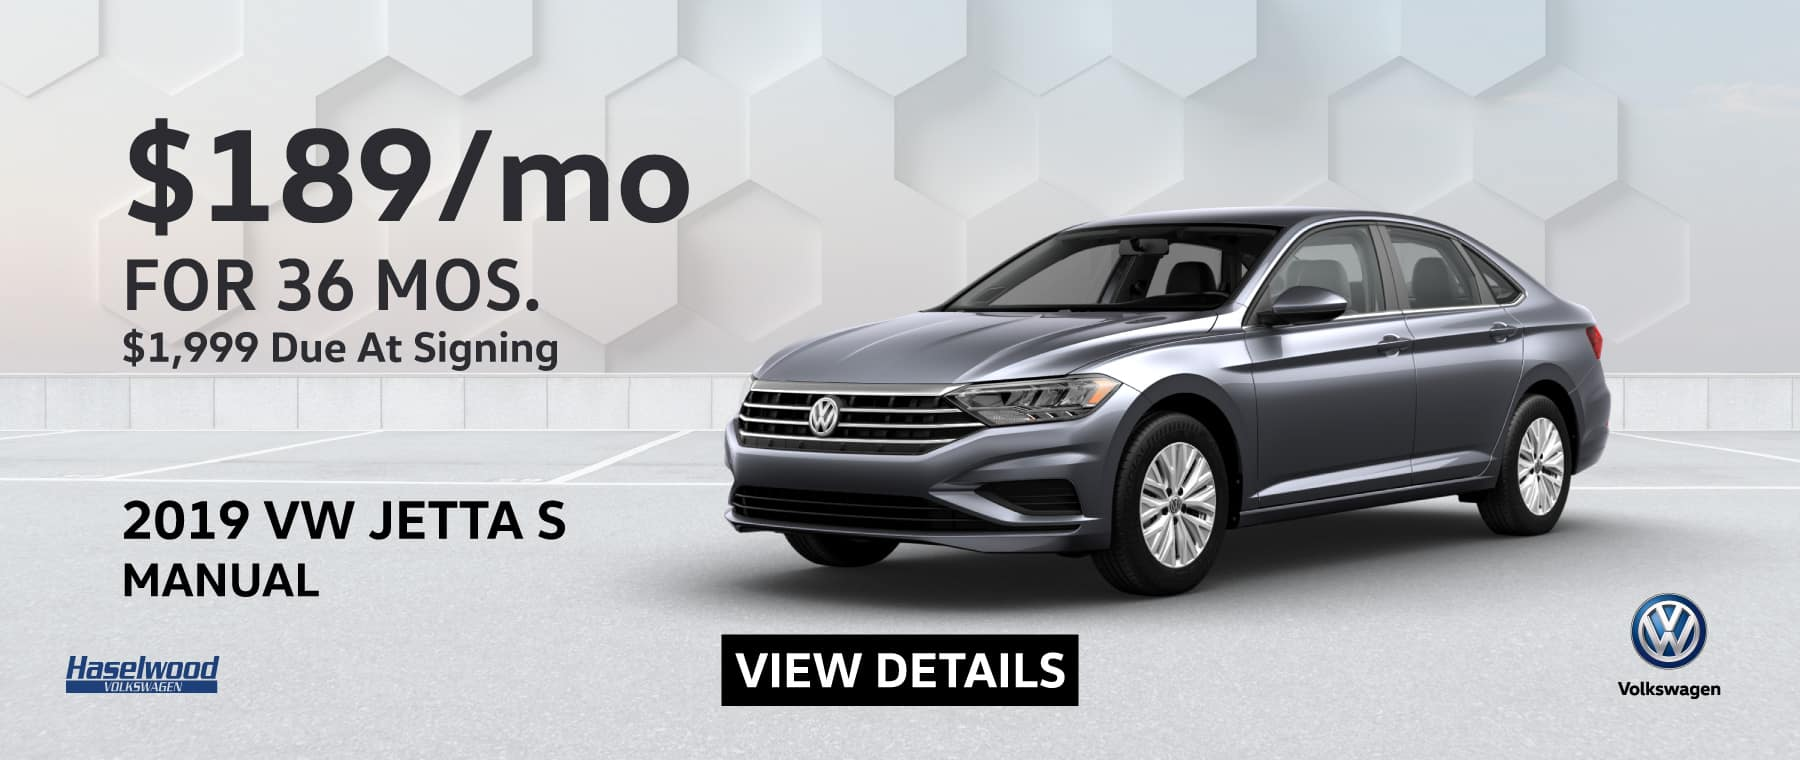 2019 VW Jetta S Manual $189/mo for 36 months $1,999 due at signing*   *$189 per mo. for 36 months. Lease with $1,999 due at signing; includes a $595 acquisition fee on new 2019 VW Jetta S Manual, financed through Volkswagen Credit. No security deposit required. Valid on VIN: 3VWN57BU5KM099492, 3VWN57BUXKM115492, 3VWN57BU4KM110143. For highly qualified customers on approved top tier credit through Volkswagen Credit. Lessee responsible for maintenance, excessive wear/tear and 20¢/mi over 10K mi/yr. Excludes state and local taxes, tags, registration and title, insurance and dealer charges. Subject to credit approval. 60 monthly payments required. A negotiable dealer documentary service fee of up to $150 may be added to the sale price or capitalized cost. See dealer for complete details and restrictions. 6 years/72,000 miles (whichever occurs first). New Vehicle Limited Warranty on MY2018 and newer VW vehicles, excluding e-Golf. See owner's literature or dealer for warranty exclusions and limitations. Exp. 1/31/2019.